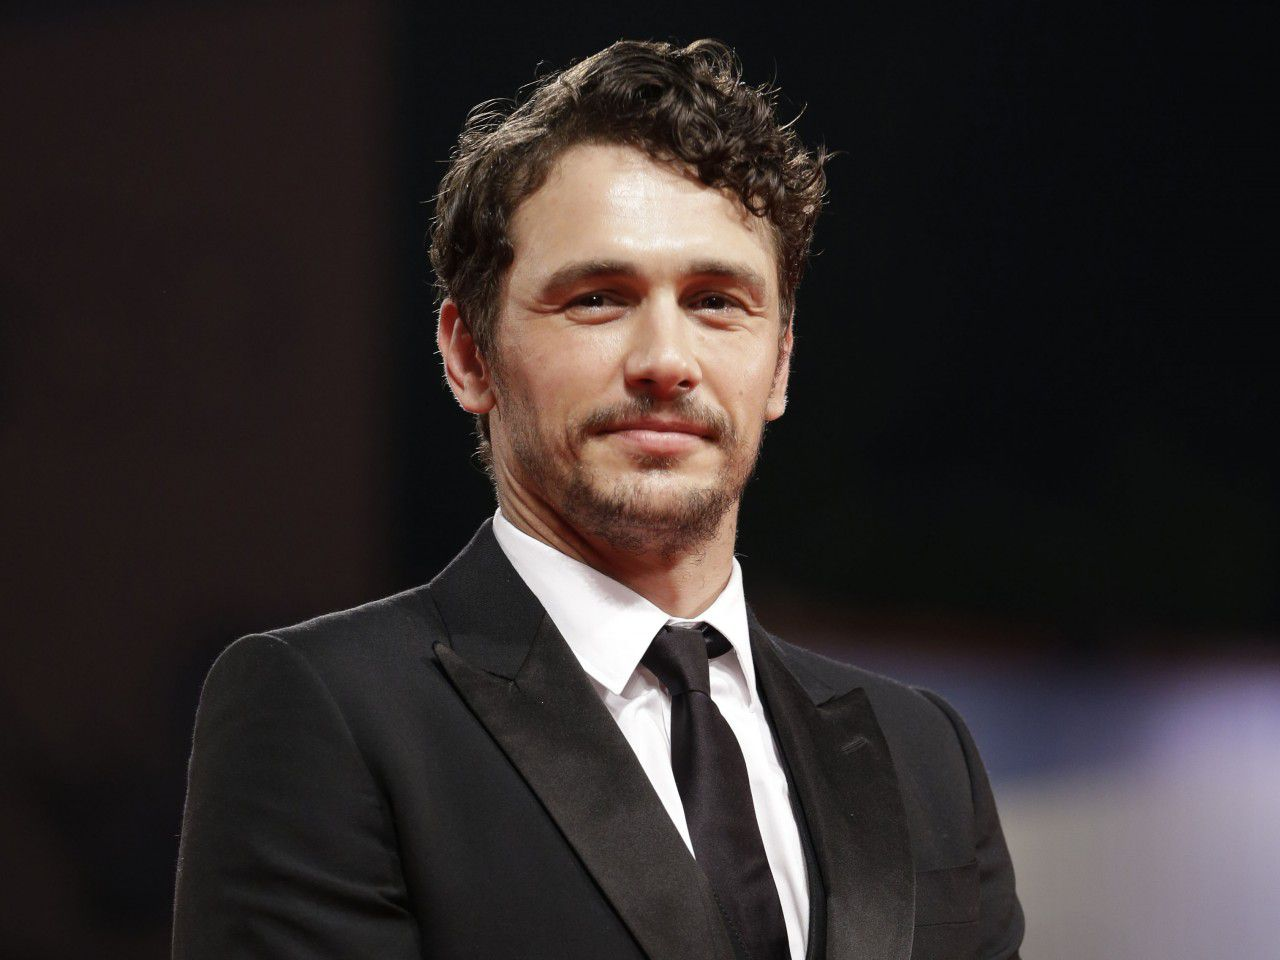 people_james_franco_jpeg_1280x960_